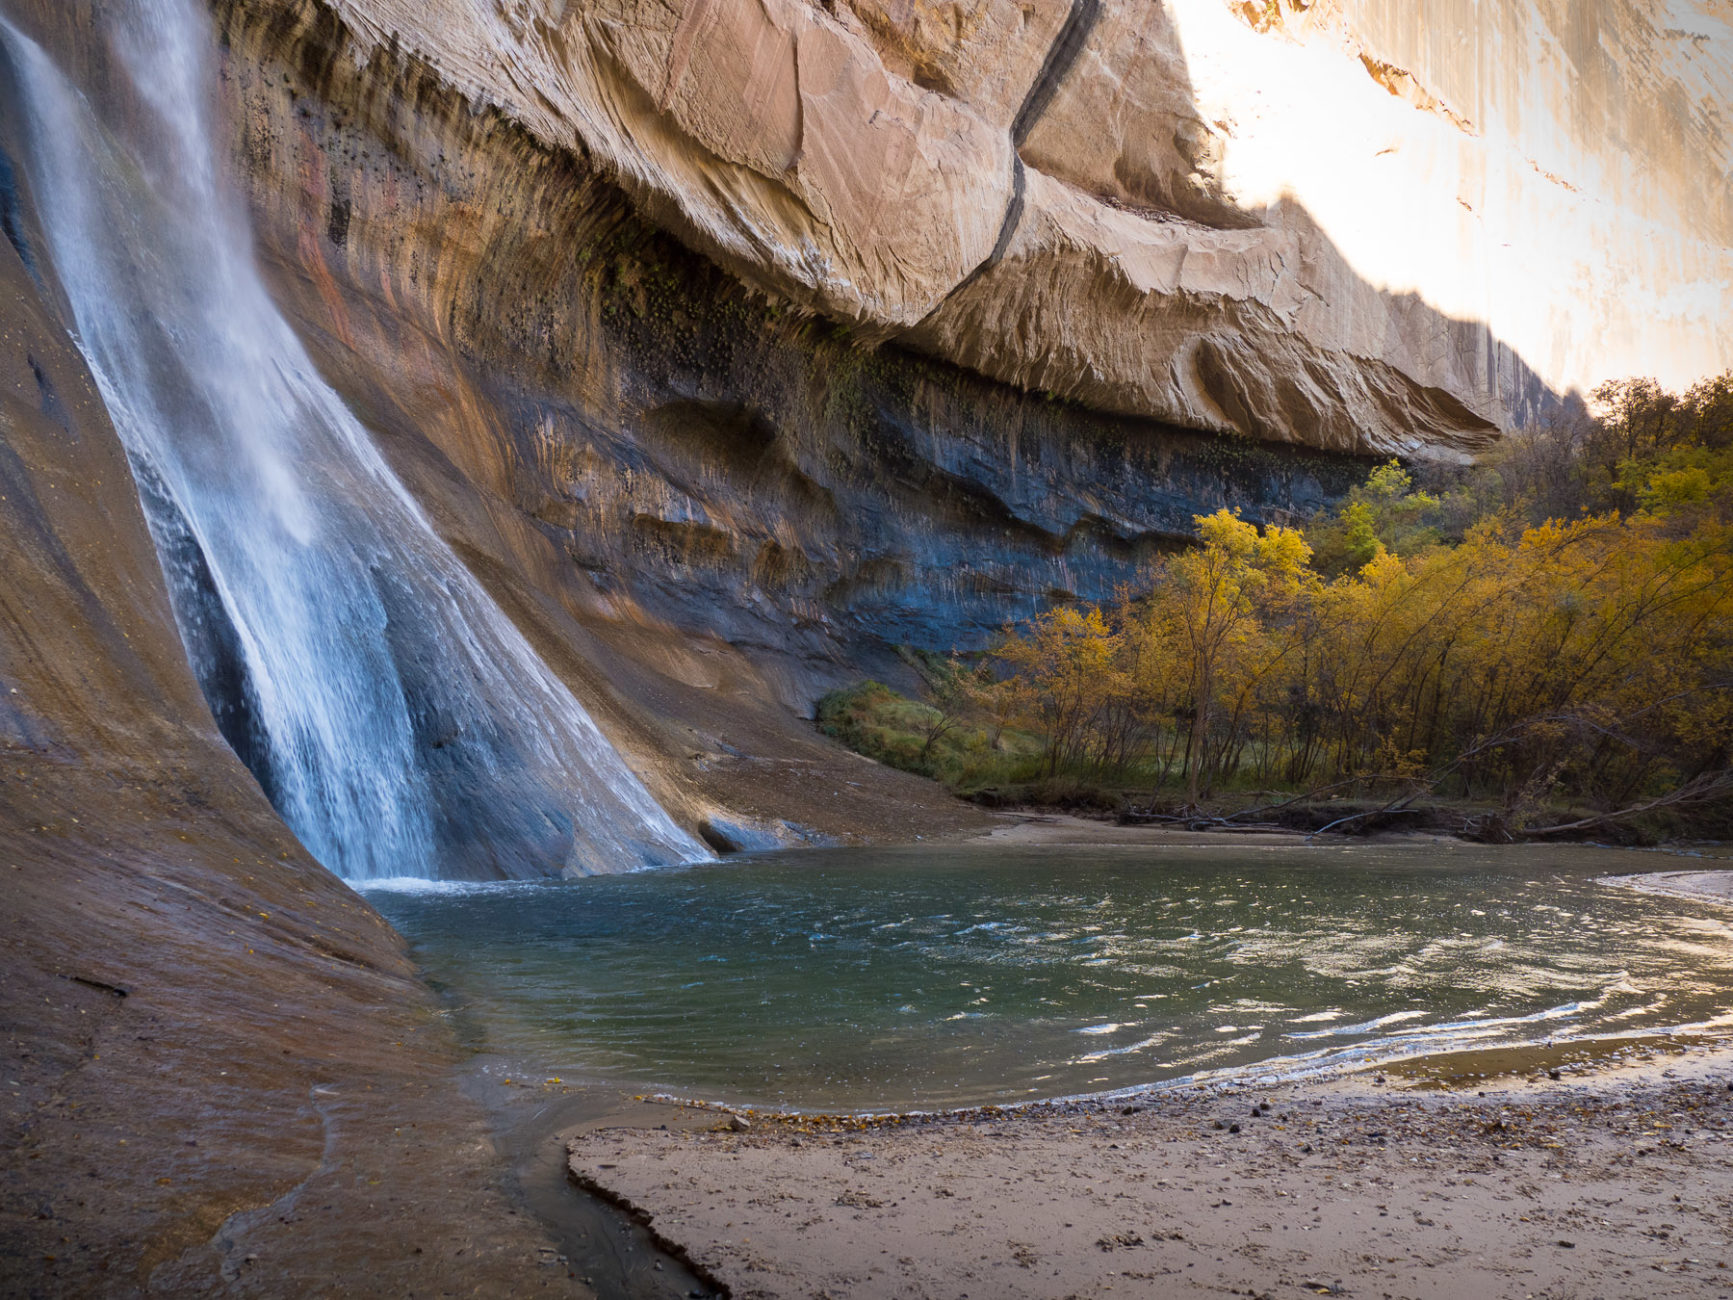 Calf Creek Wasserfall